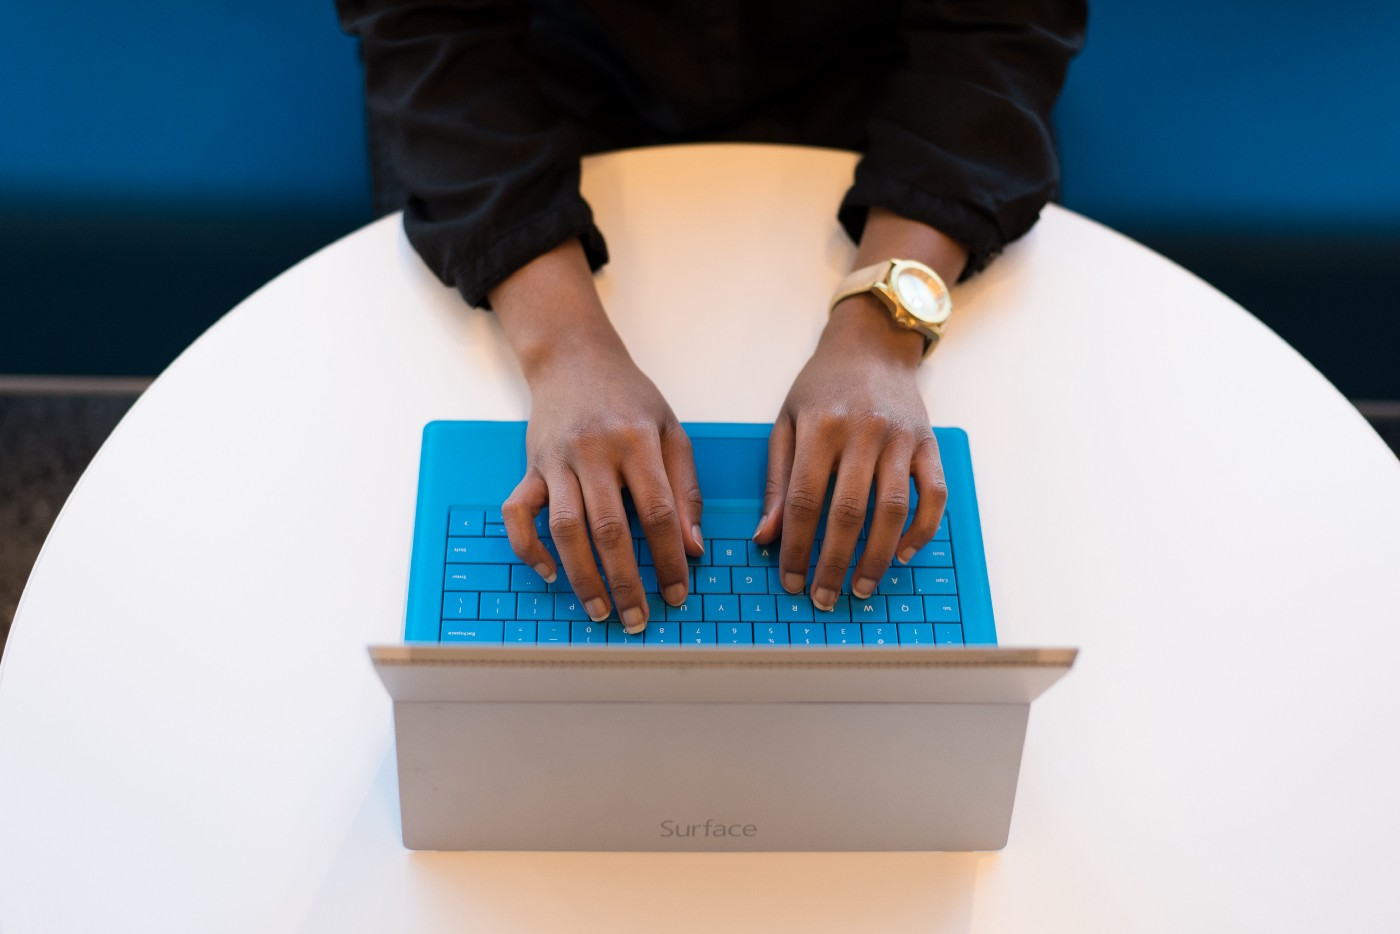 A woman's hands are poised over a laptop's keyboard on a table.